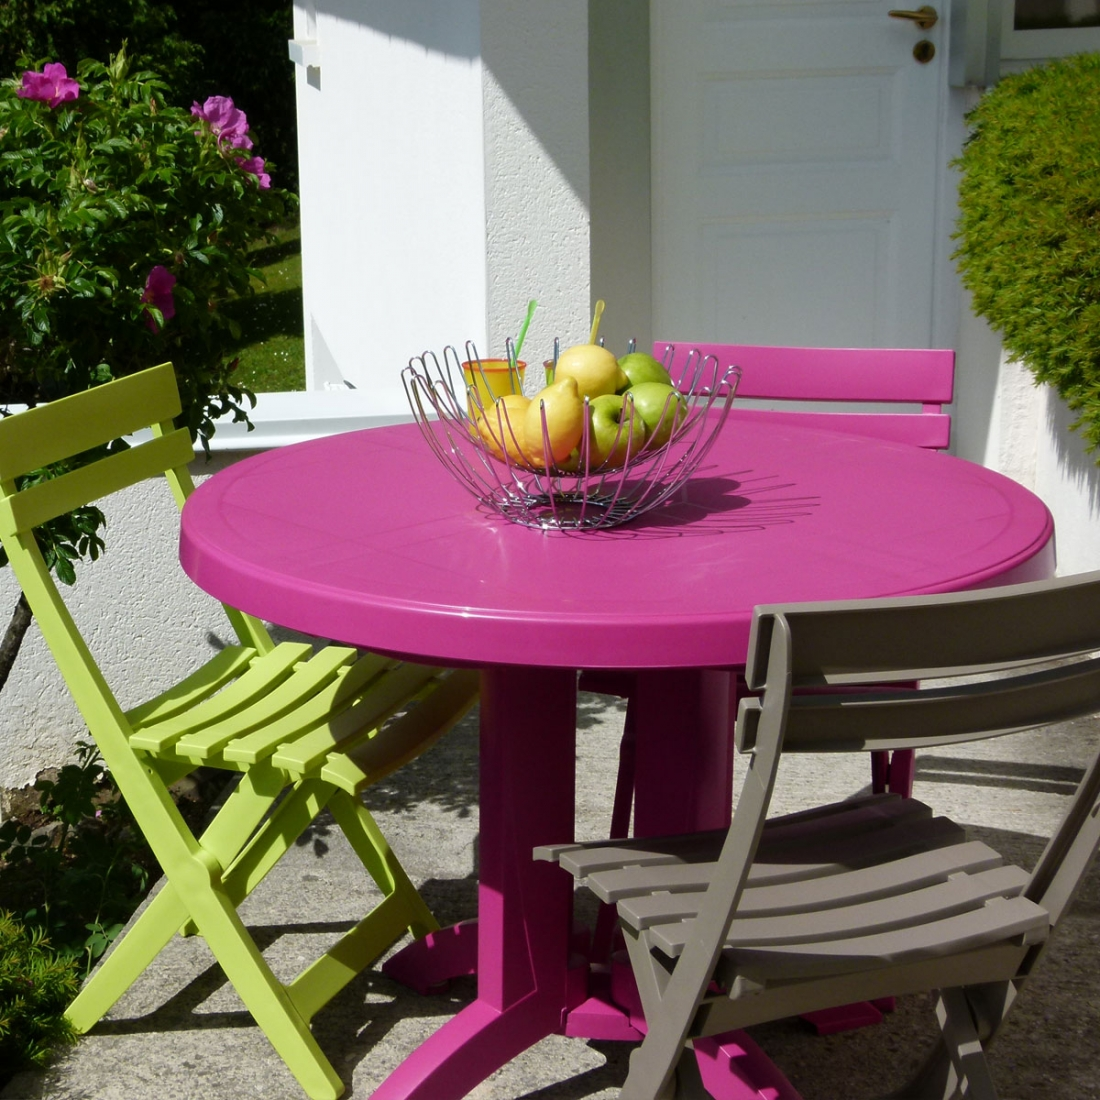 Emejing salon de jardin table ronde pvc ideas amazing for Table jardin ronde